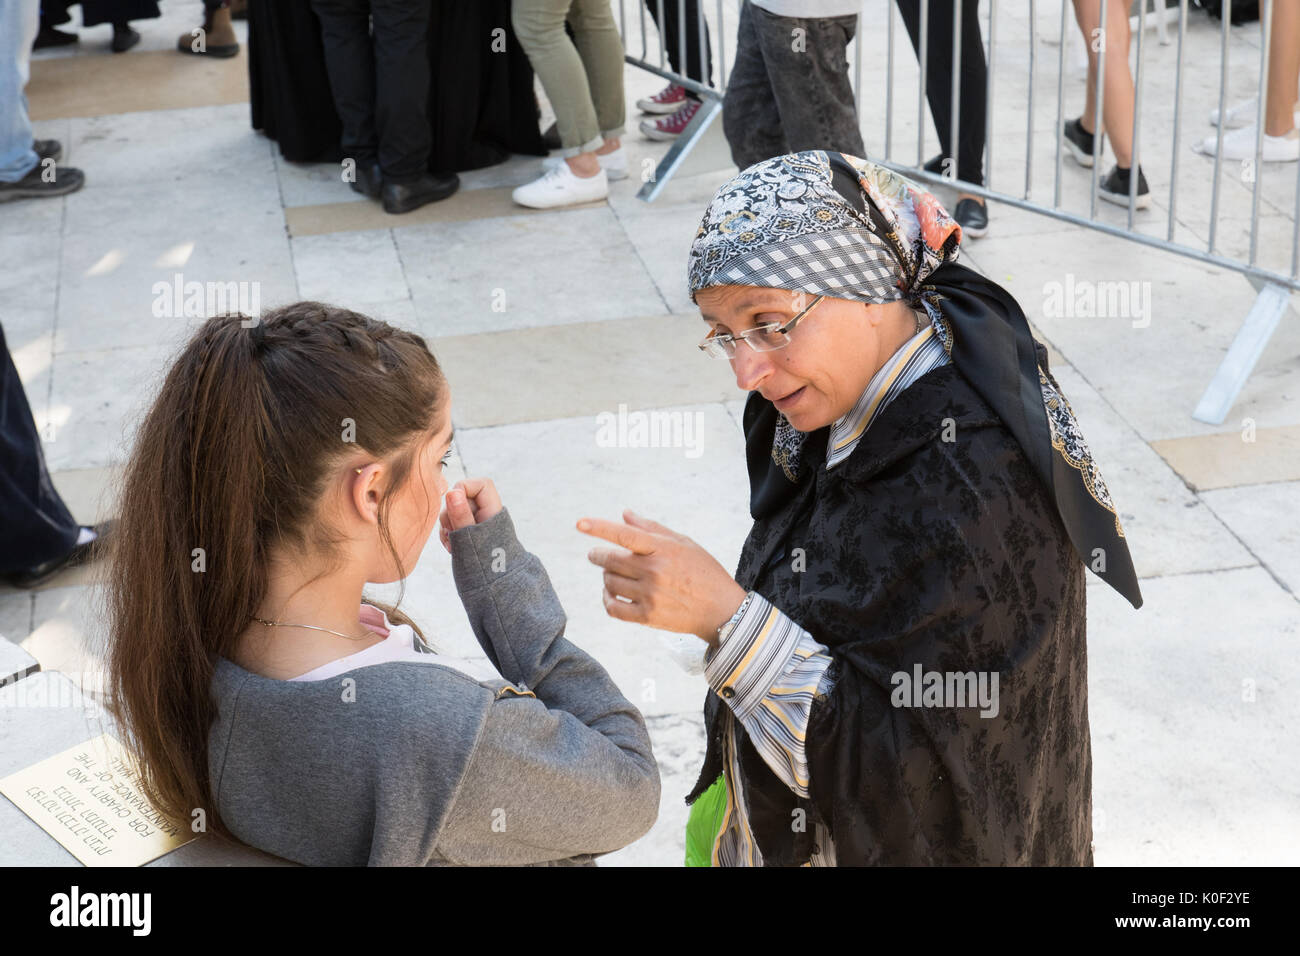 Jerusalem, Israel. 23rd Aug, 2017. Woman talking with one of the girls that were protesting during the Women of the Wall Rosh HaHodesh Elul prayer at the Western Wall in Jerusalem. Credit: Valentin Sama-Rojo/Alamy Live News - Stock Image